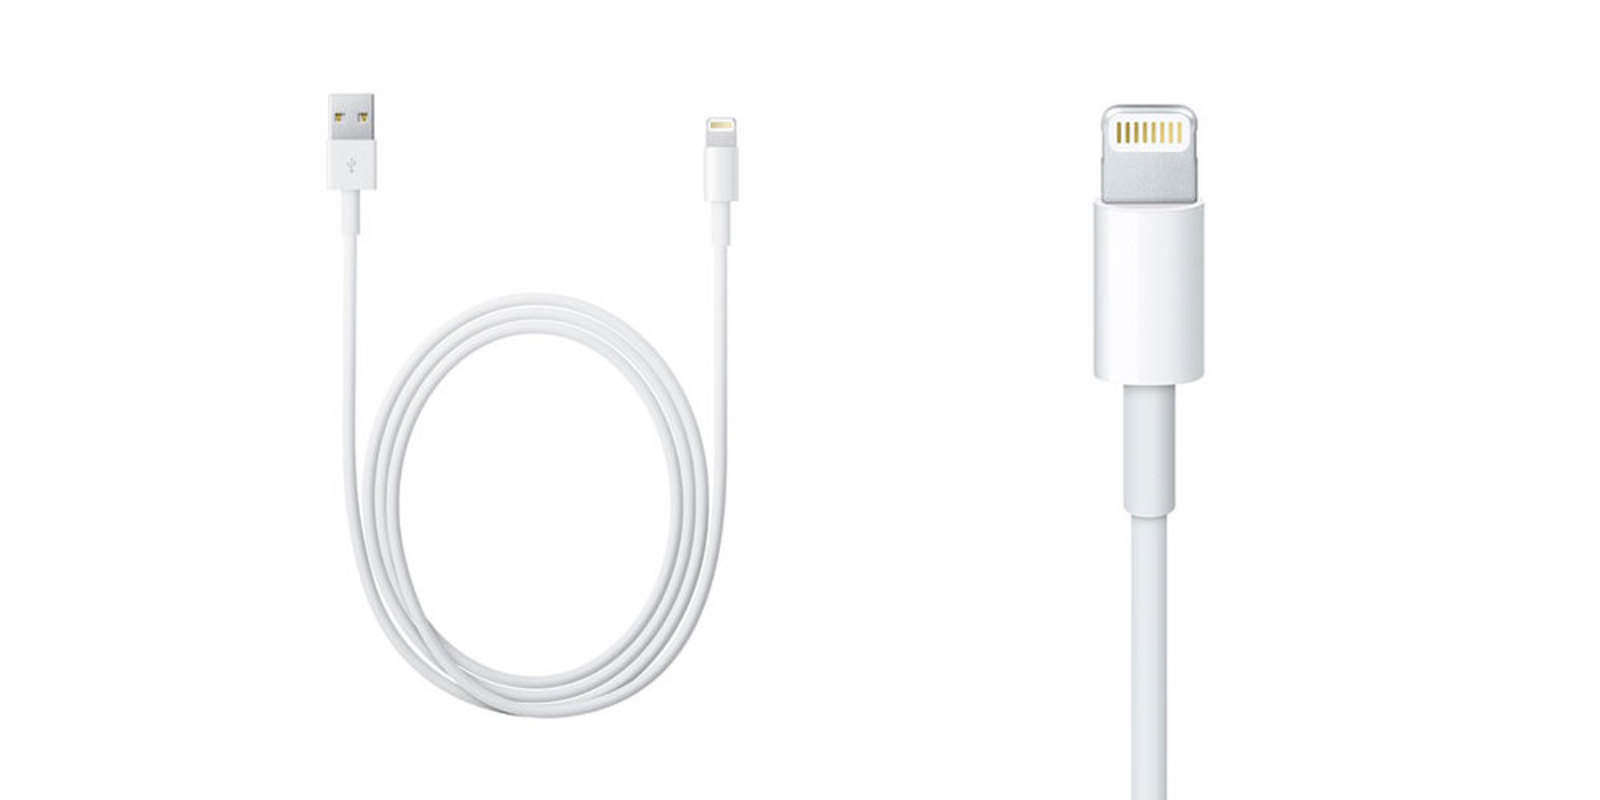 These two, 2-meter long Lightning cables are going for less than a single, standard one.